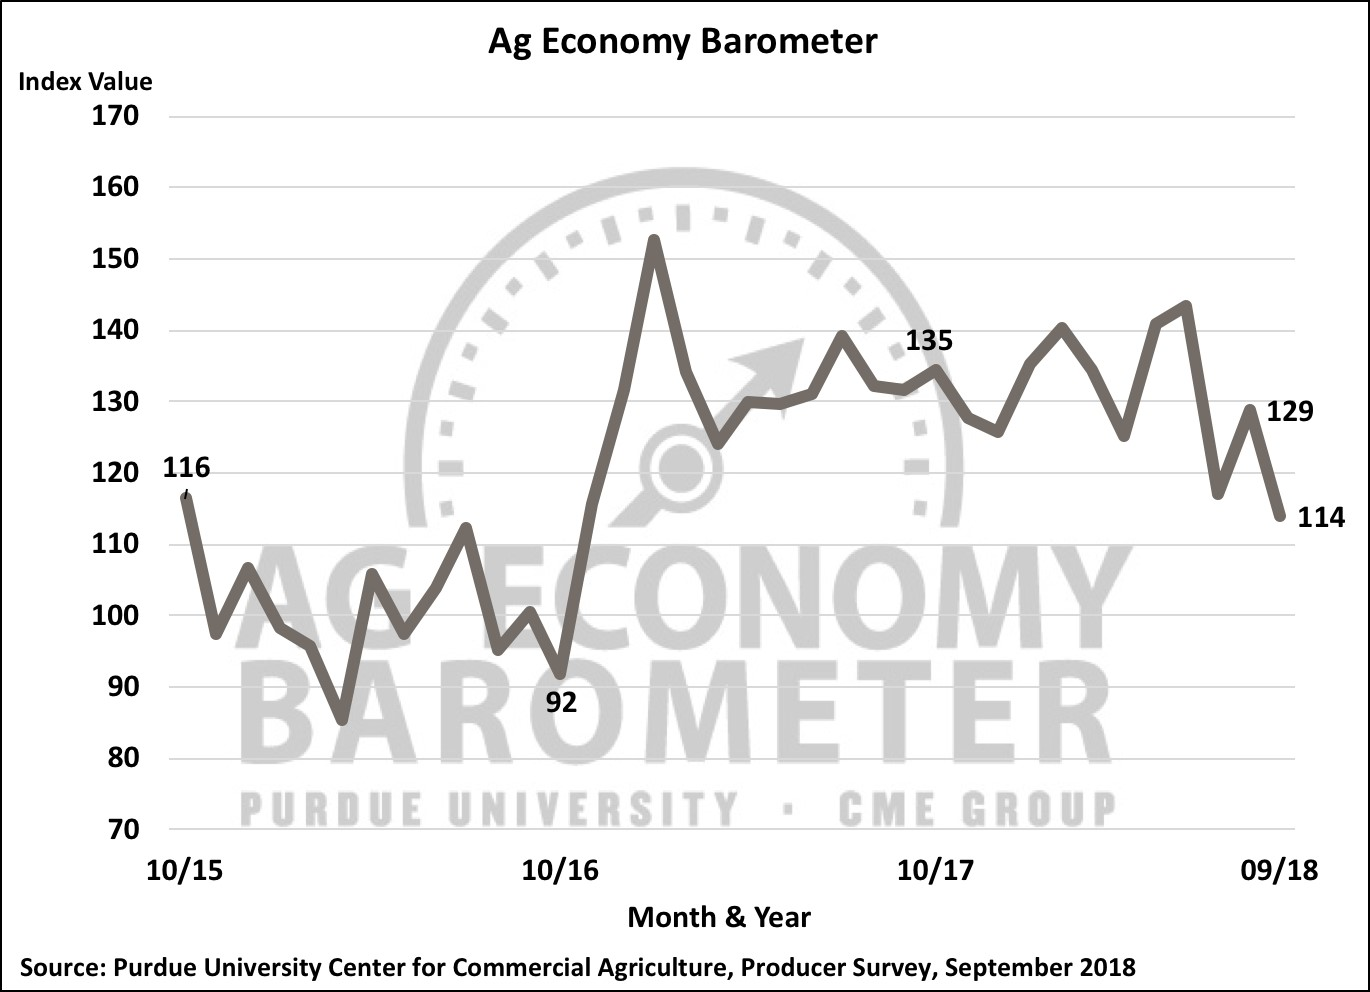 Figure 1. Purdue/CME Group Ag Economy Barometer, October 2015-September 2018.